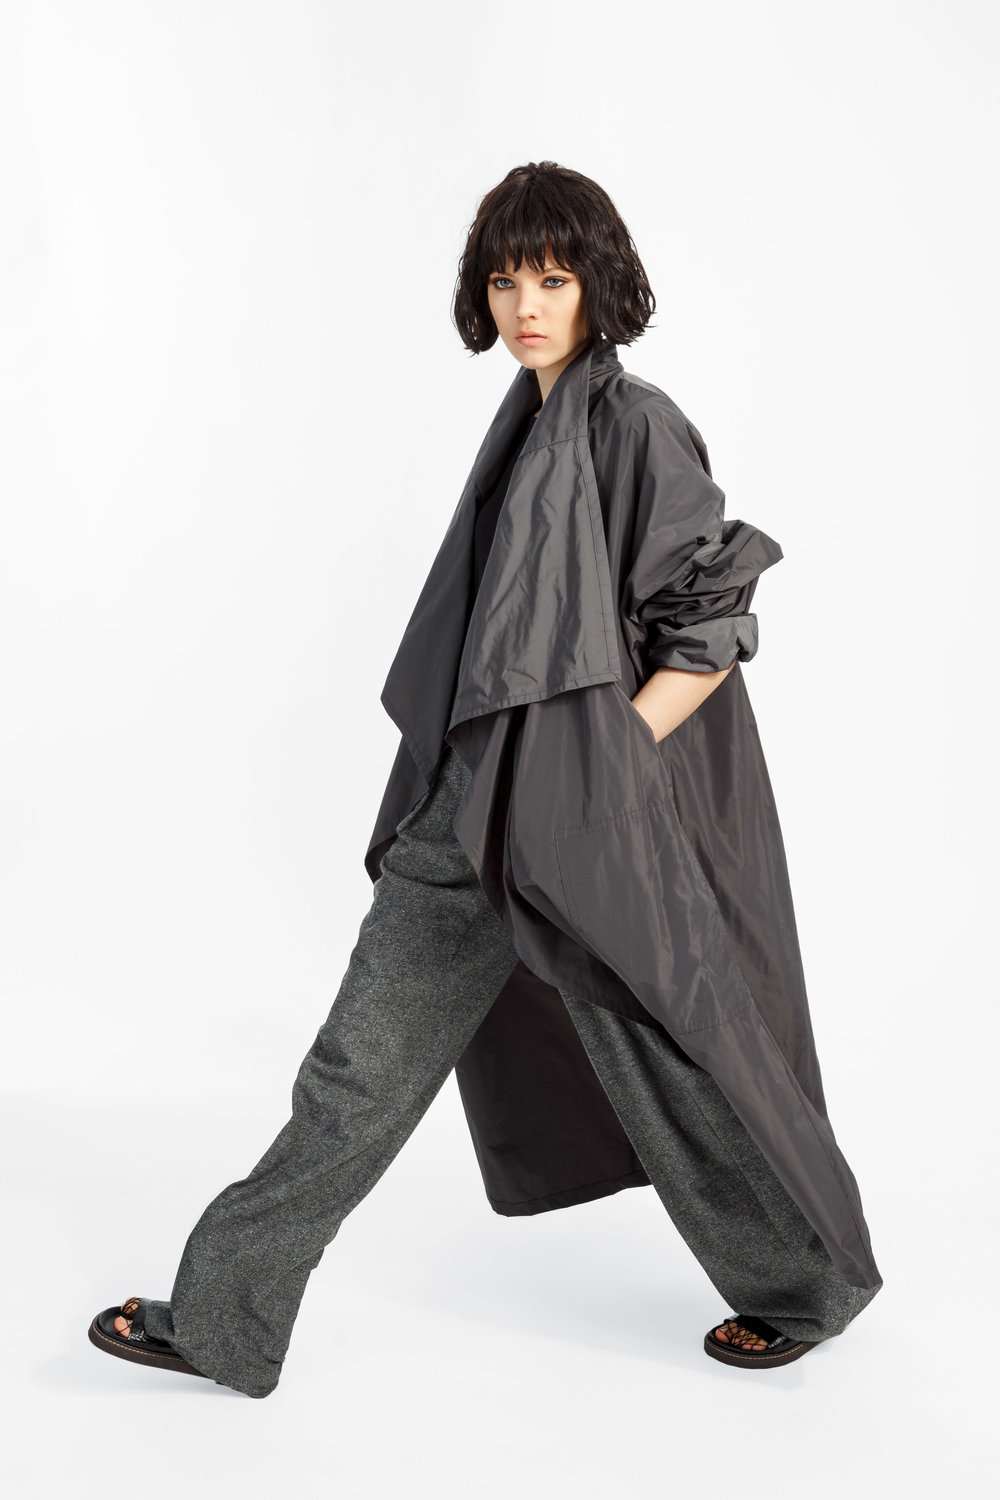 Spencer - ....A long, oversized trench coatShop ..Un trench long et surdimensionnéeMagasiner....